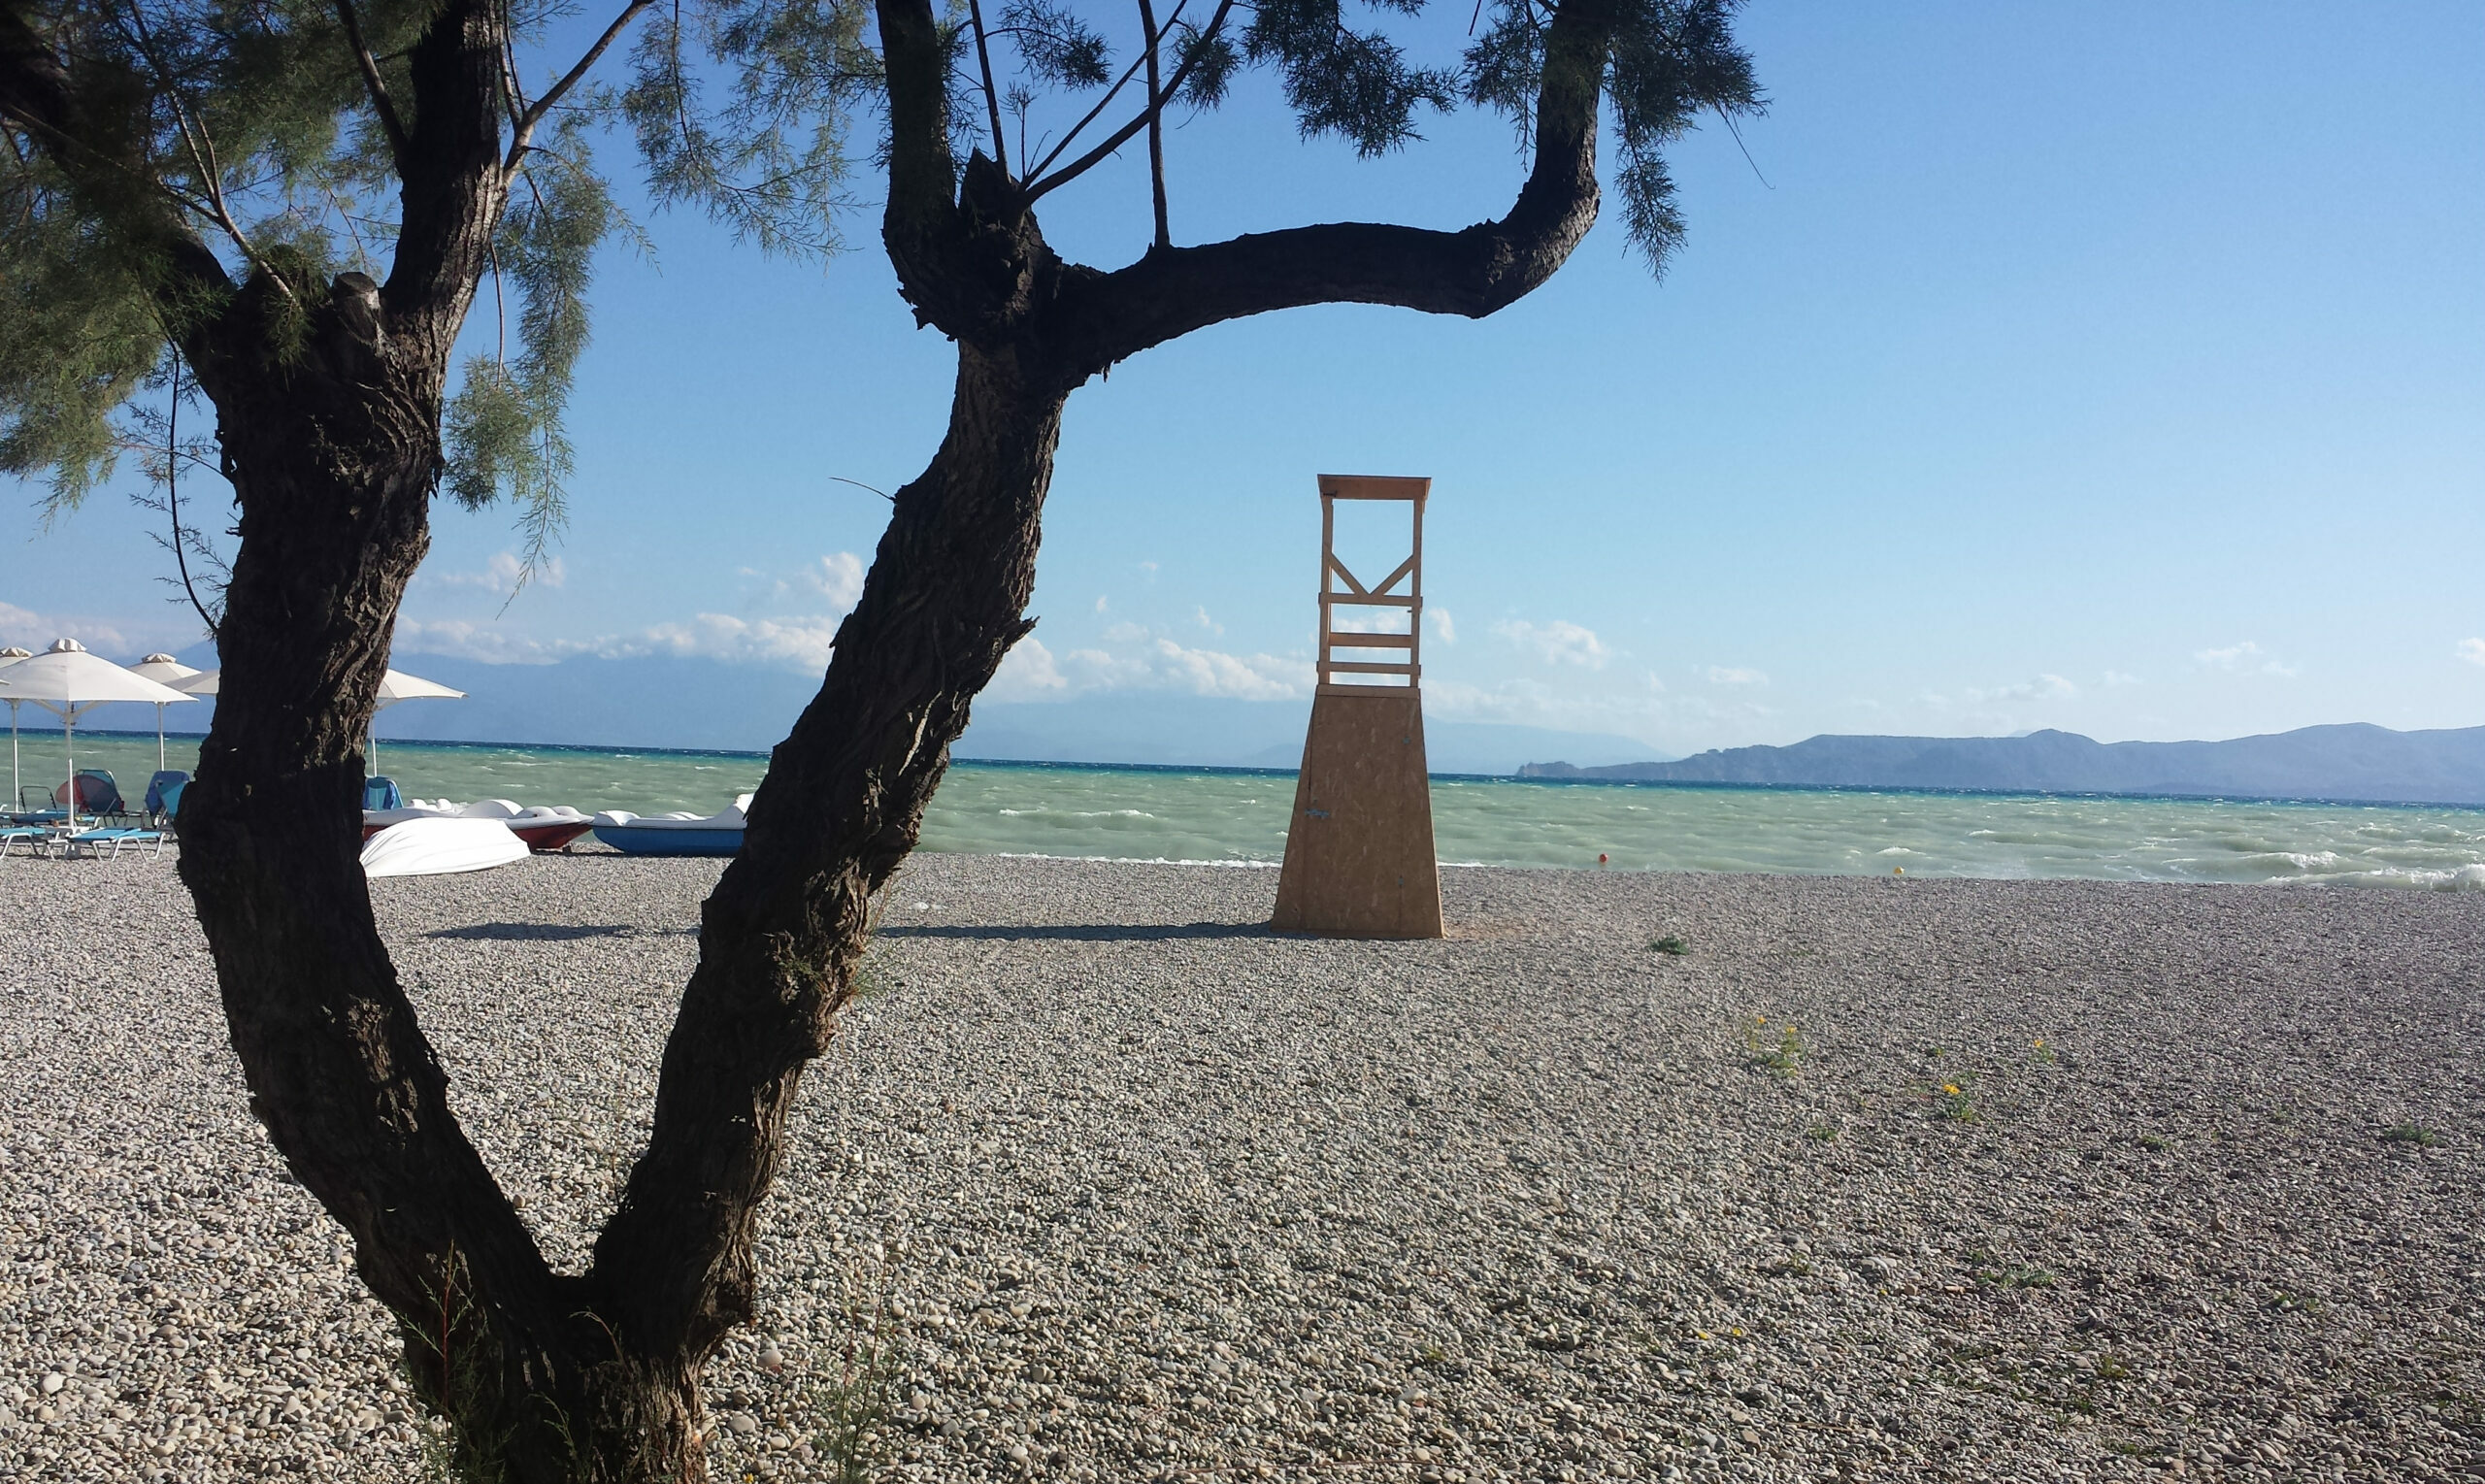 The beaches of the Corinthian Sea for great swimming experiences.